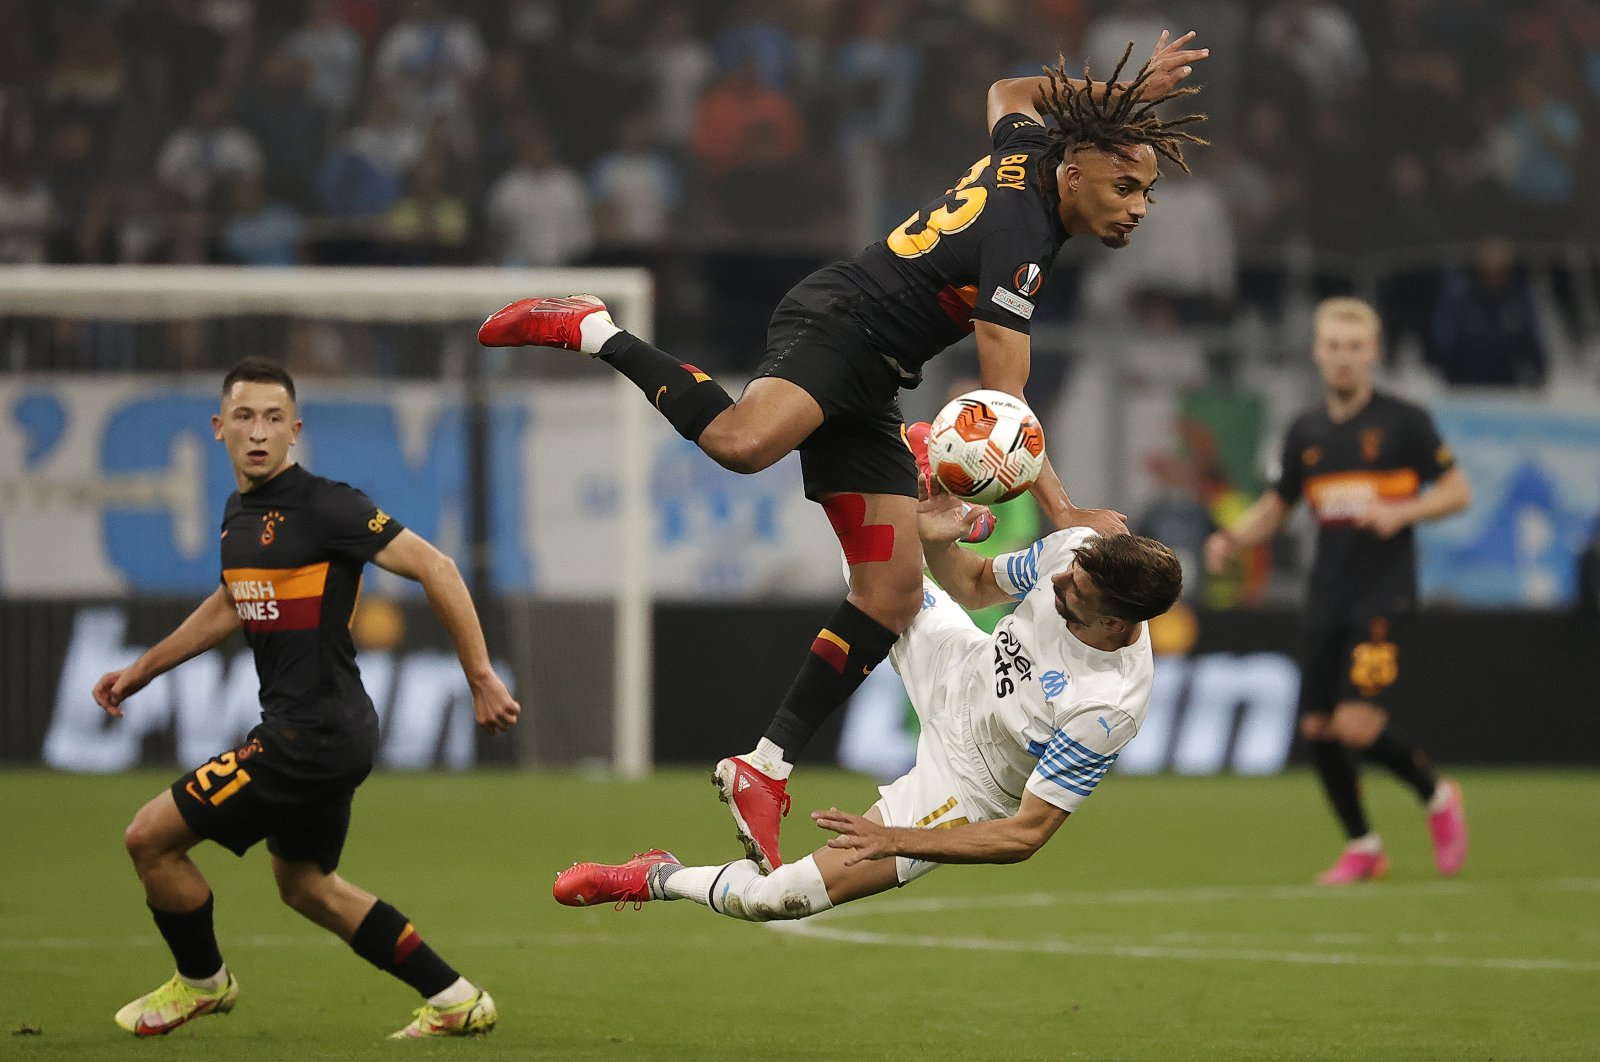 Galatasaray's Sacha Boey in action with Marseille's Luan Peres during the UEFA Europa League match, Marseille, France, Sept. 30, 2021 (AA Photo)